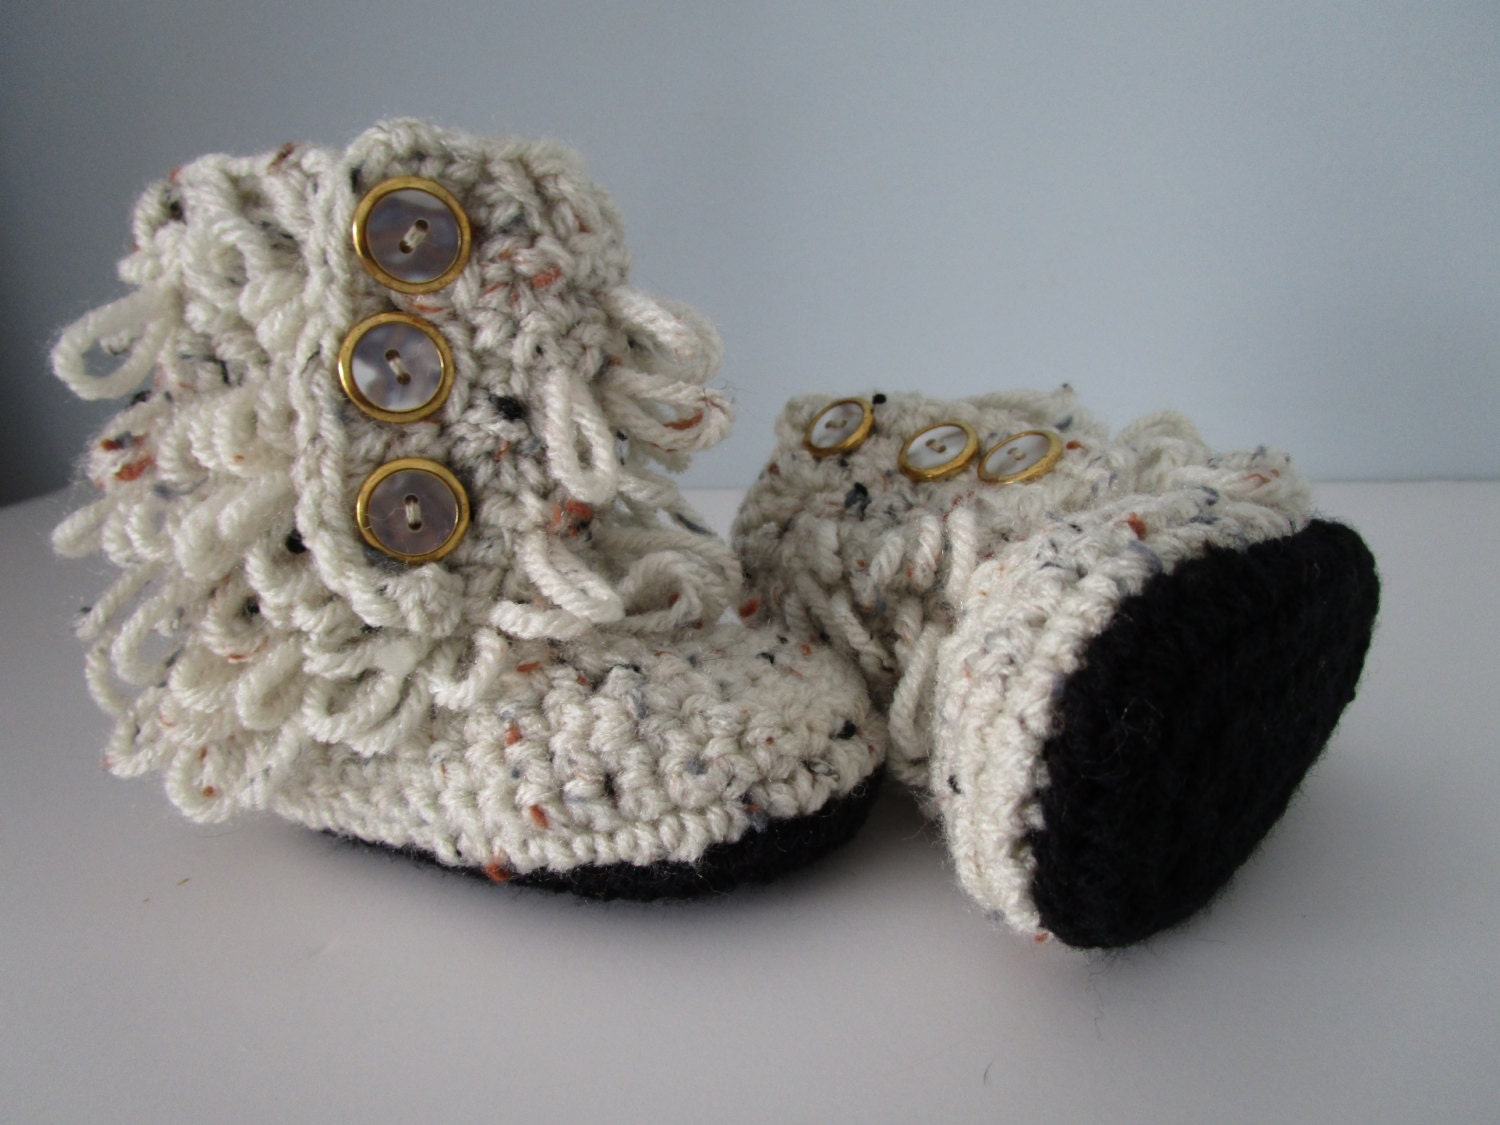 Baby Crochet Ugg Boots 6 12 months Rain Boots by KathieSewHappy